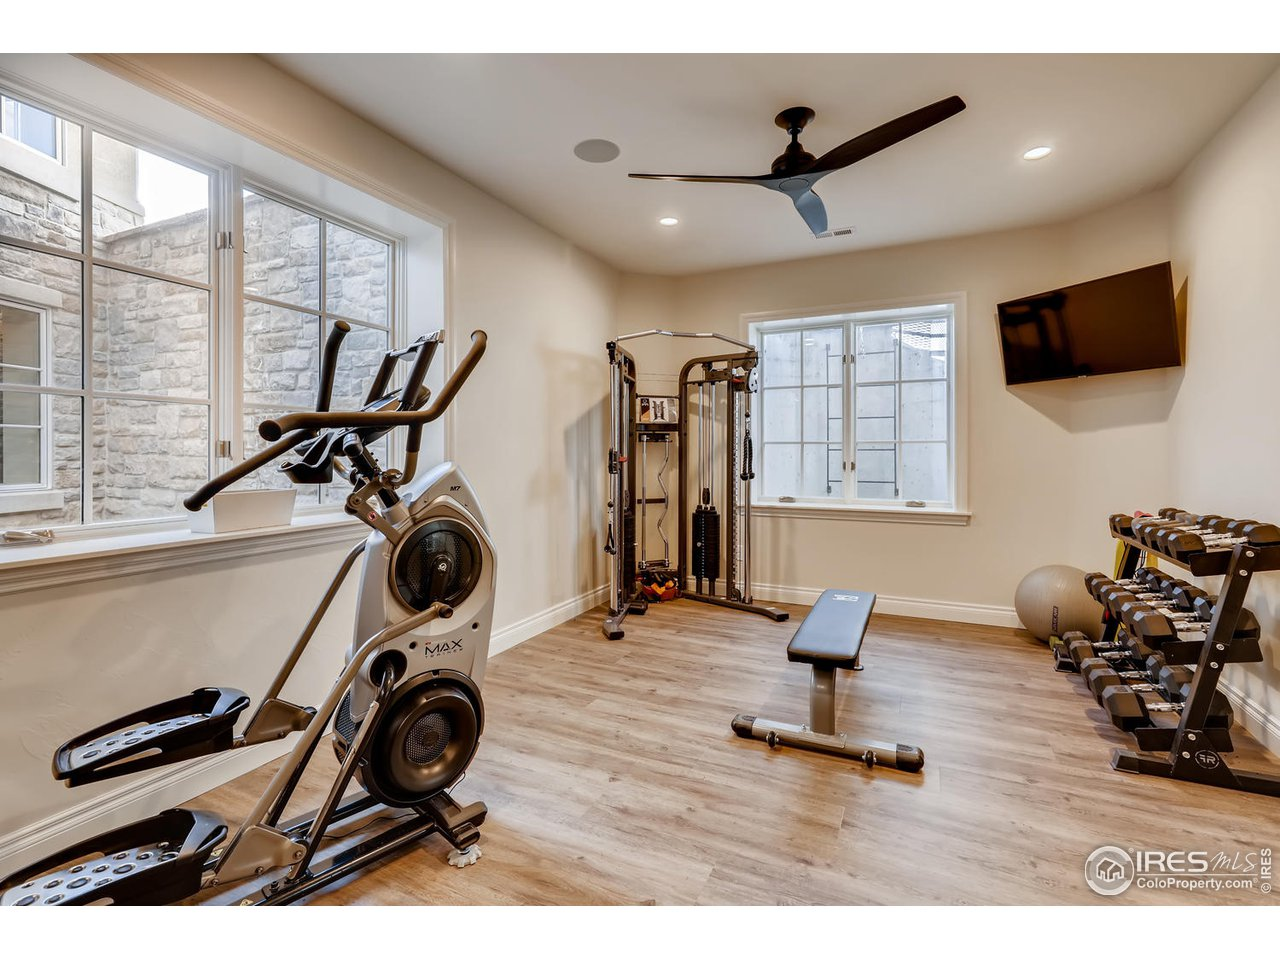 Basement Exercise or Flex Space